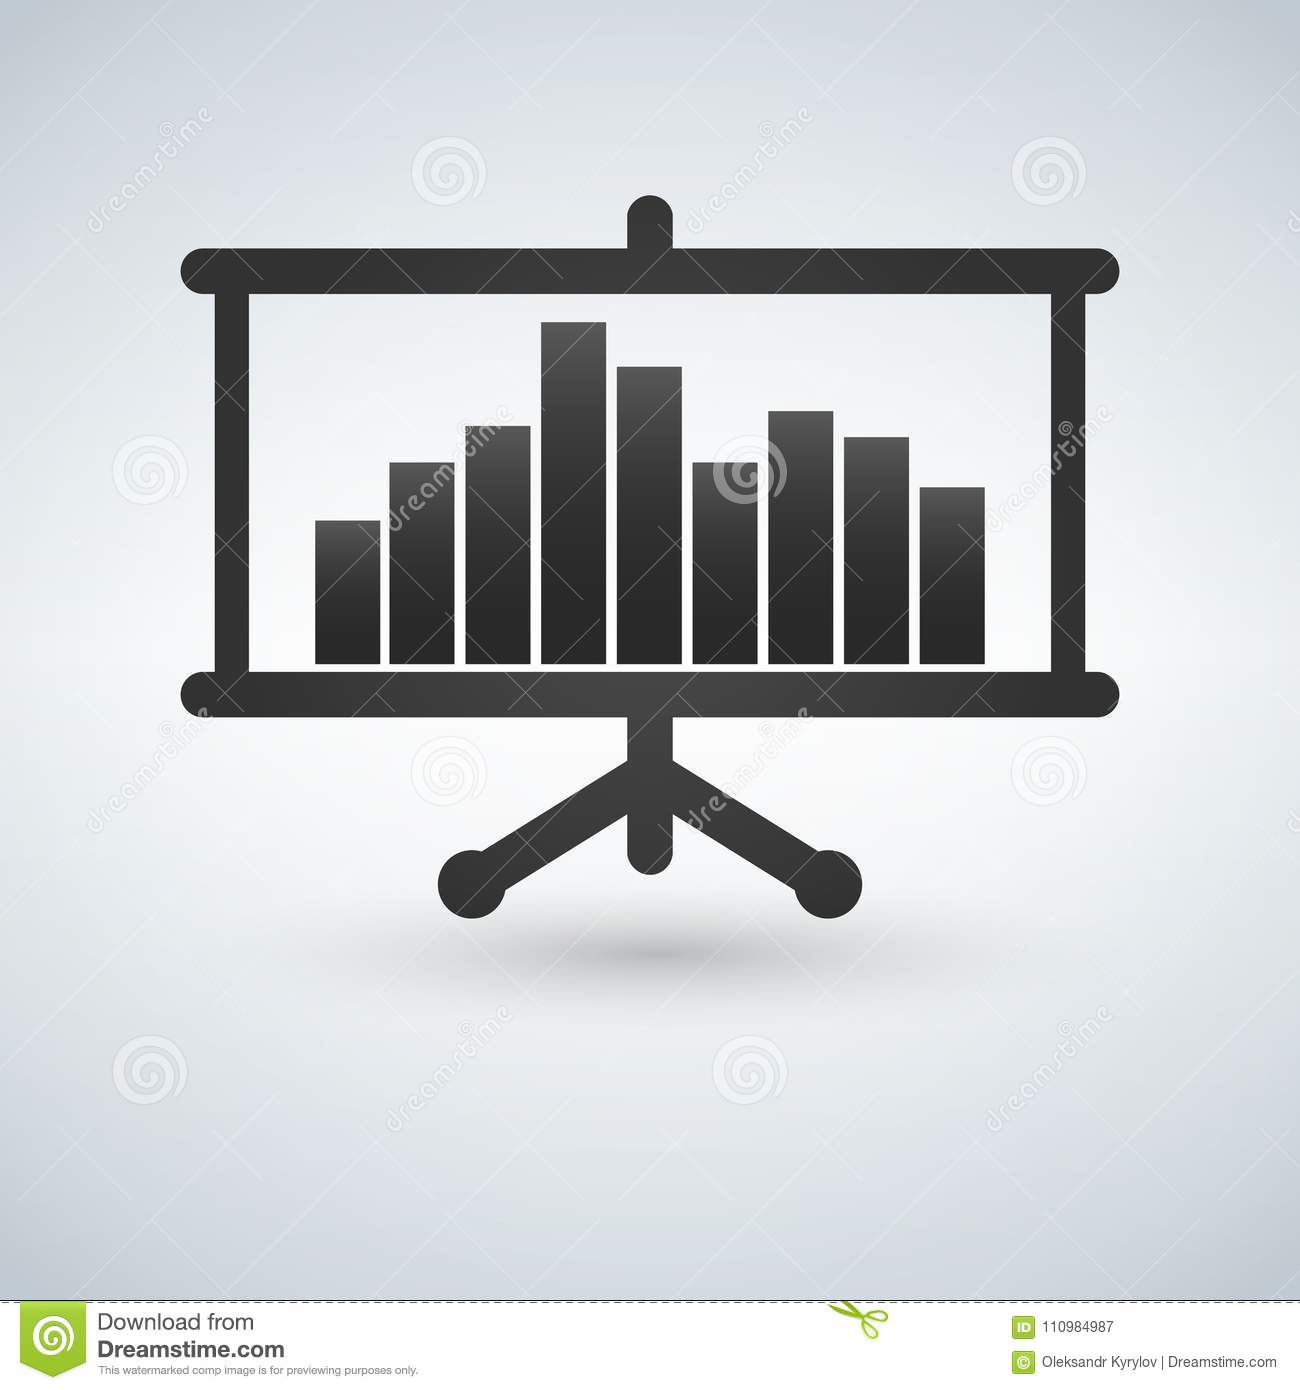 Projector Screen With Graph Chart Icon. Illustration. Stock ...